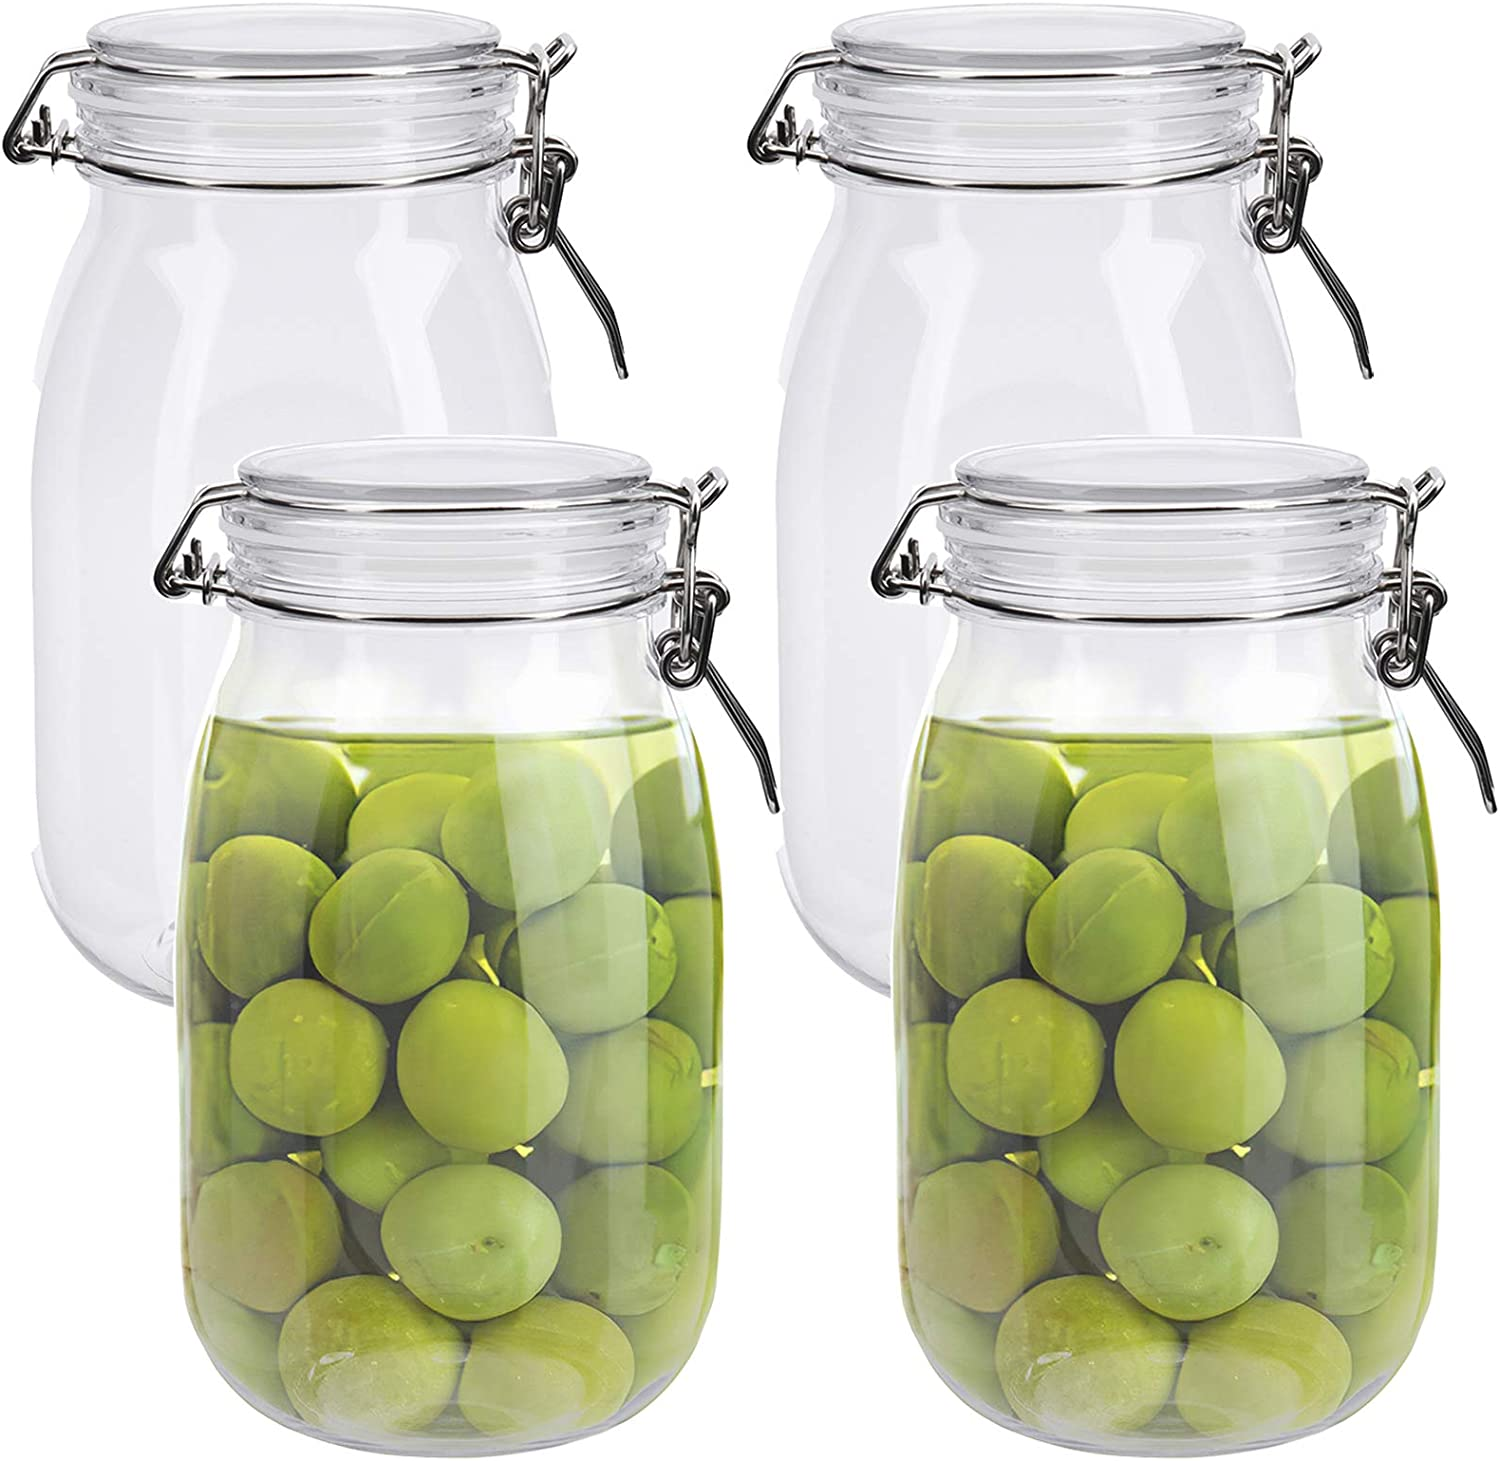 Lawei 4 Pack Plastic Mason Jars with Hinged Lids - 55 Oz Clear Acrylic Canister Set Wide Mouth Mason Jars for Kitchen Serving Tea, Coffee, Spice, Candy, Cookie